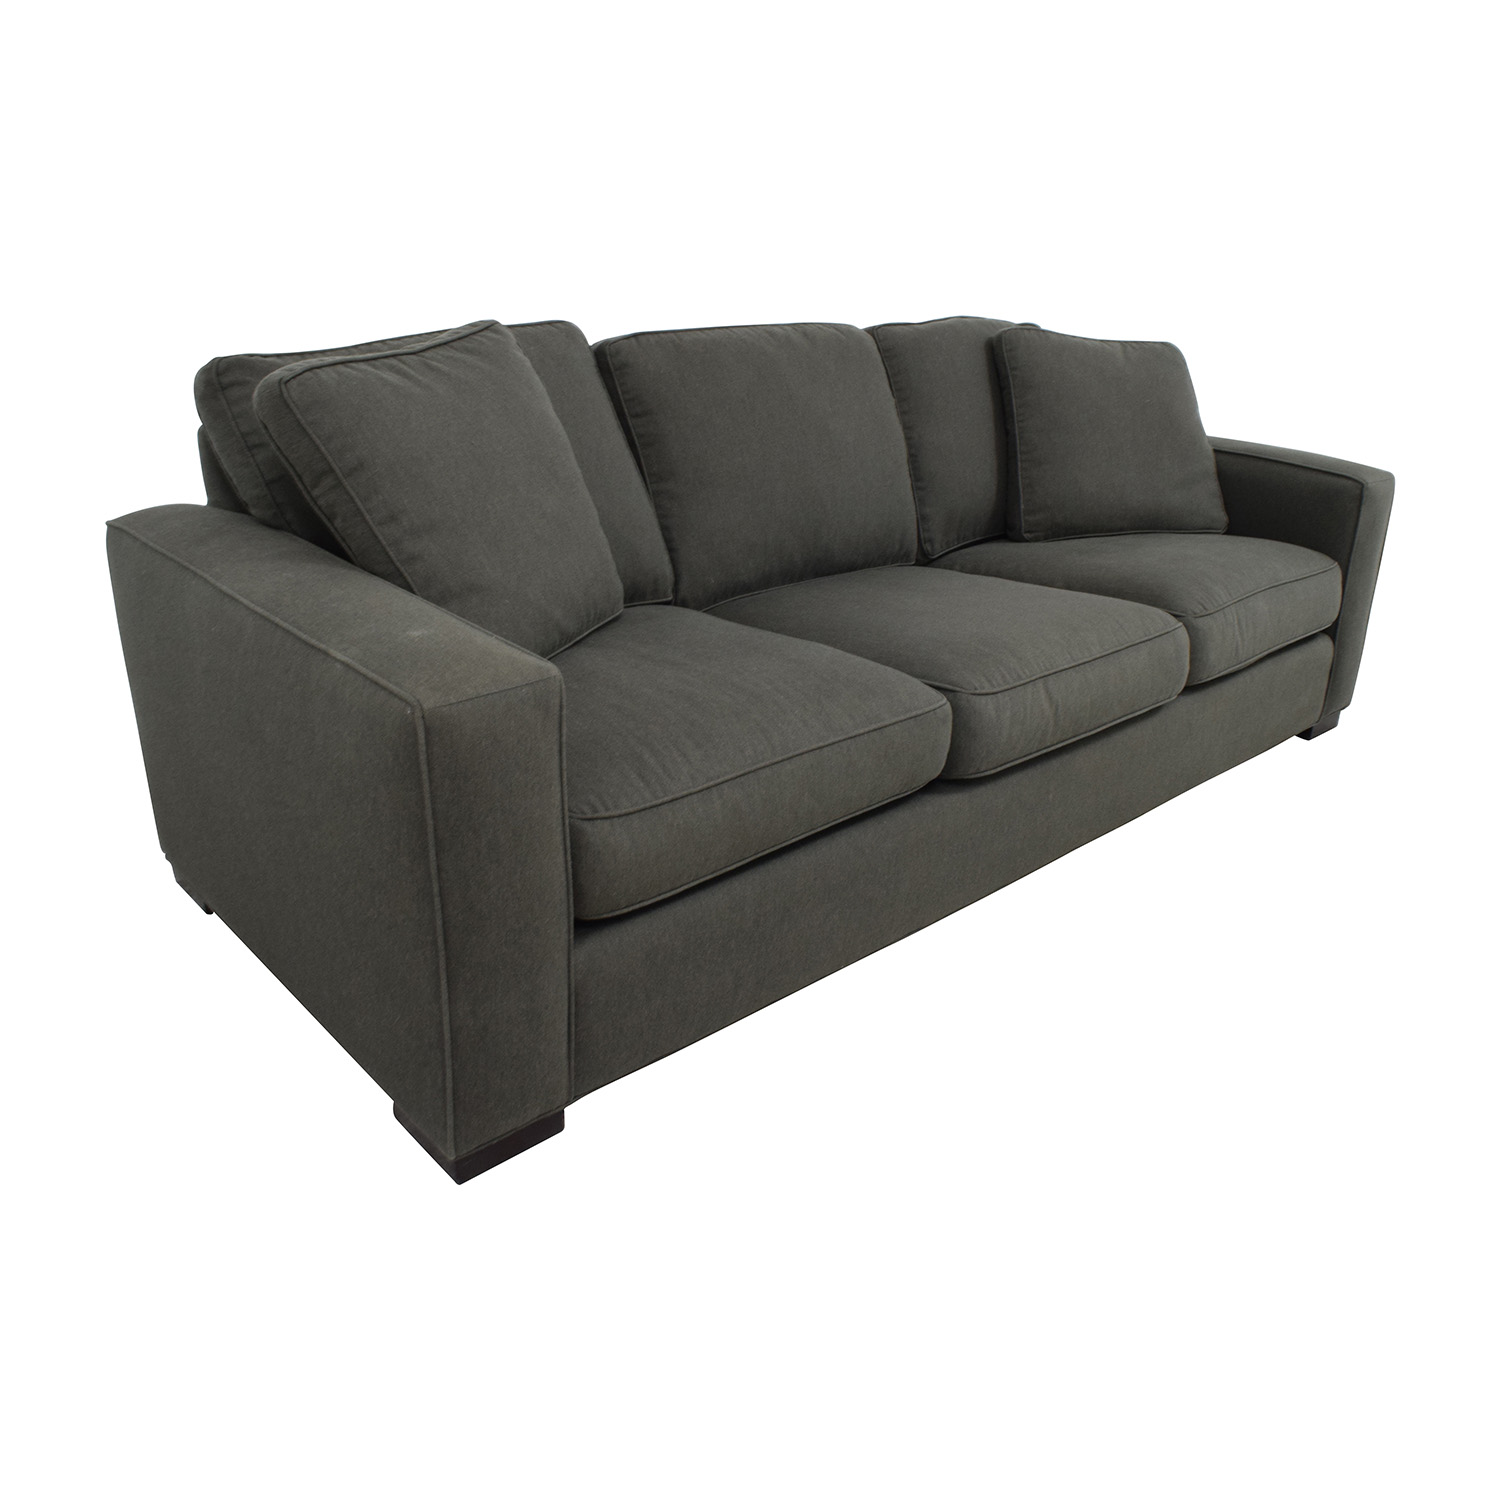 room and board metro sleeper sofa seat covers 49 off in charcoal